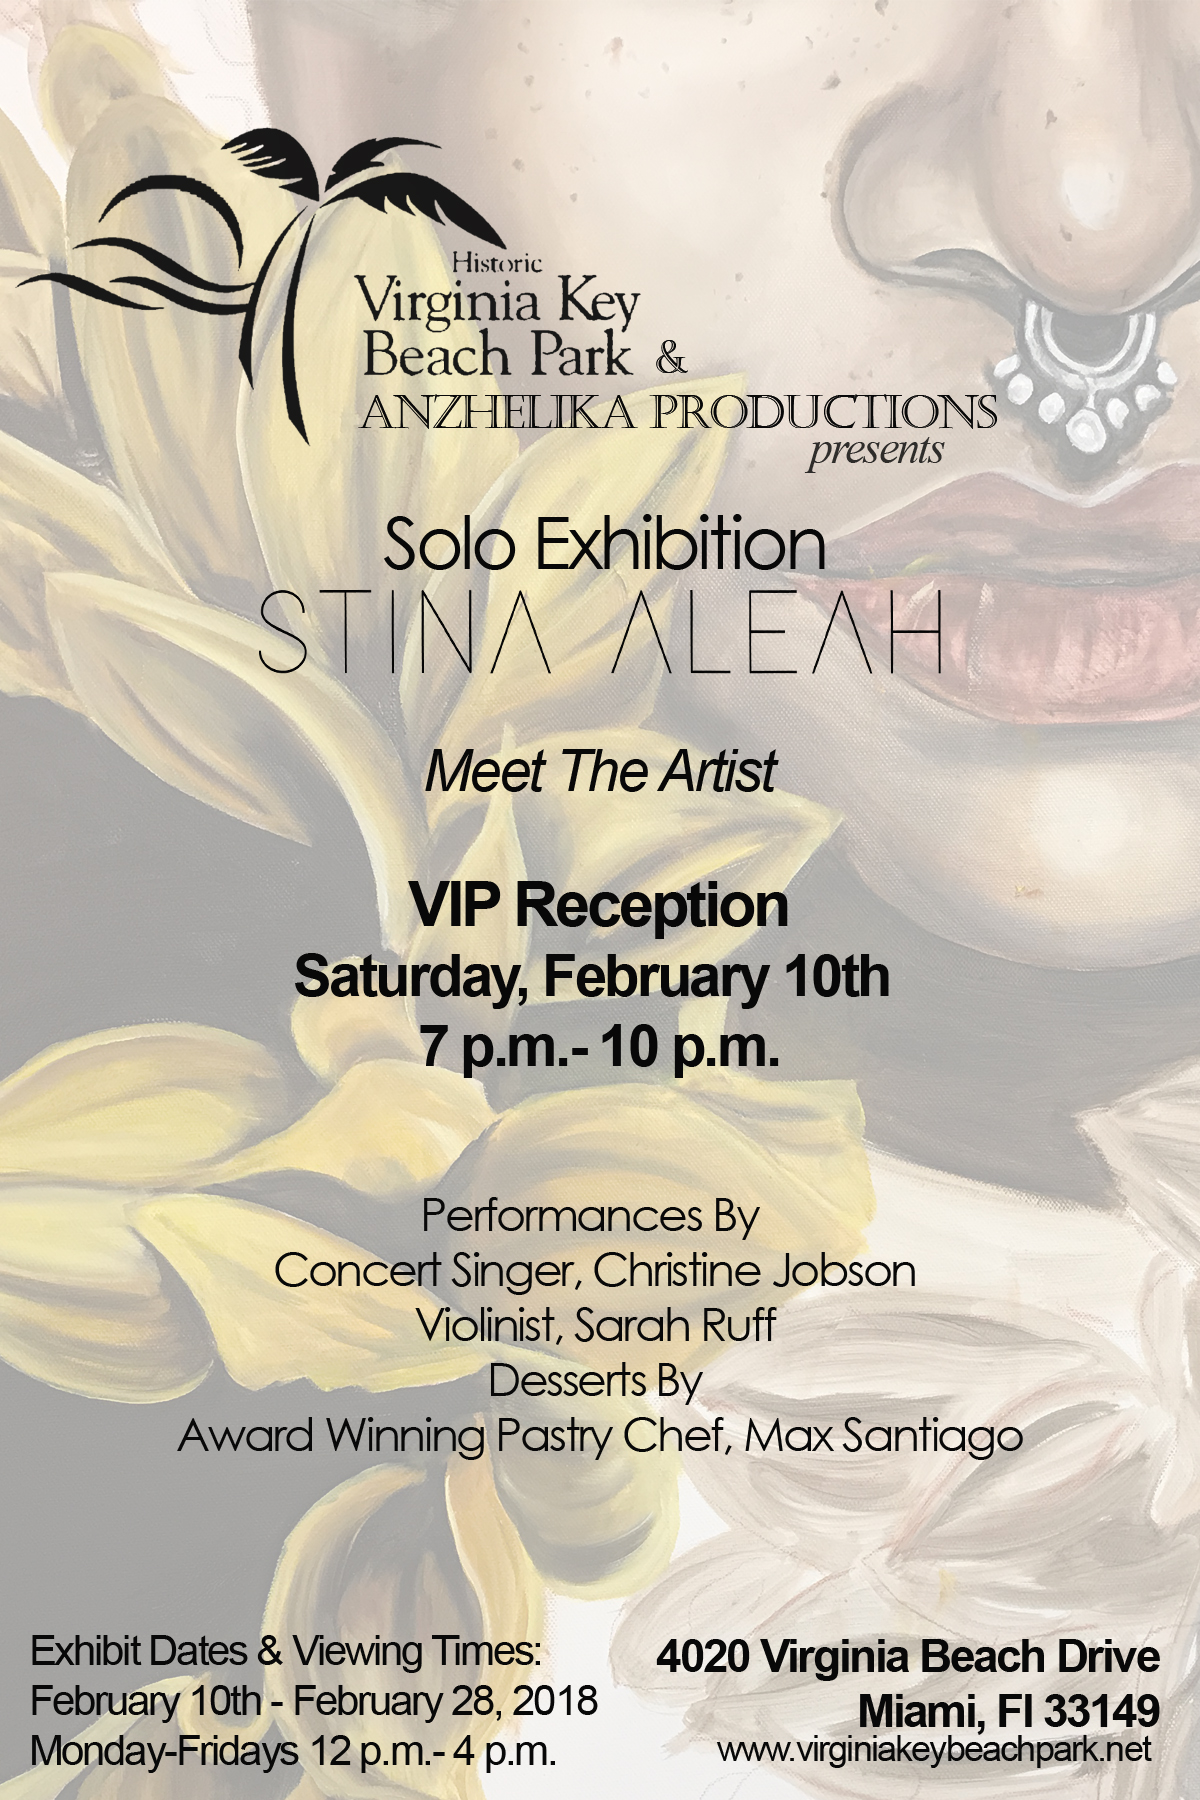 Solo Exhibition with the Virginia Key Beach Park on February 10th 2018.Work will be on display until February 28th, 2018